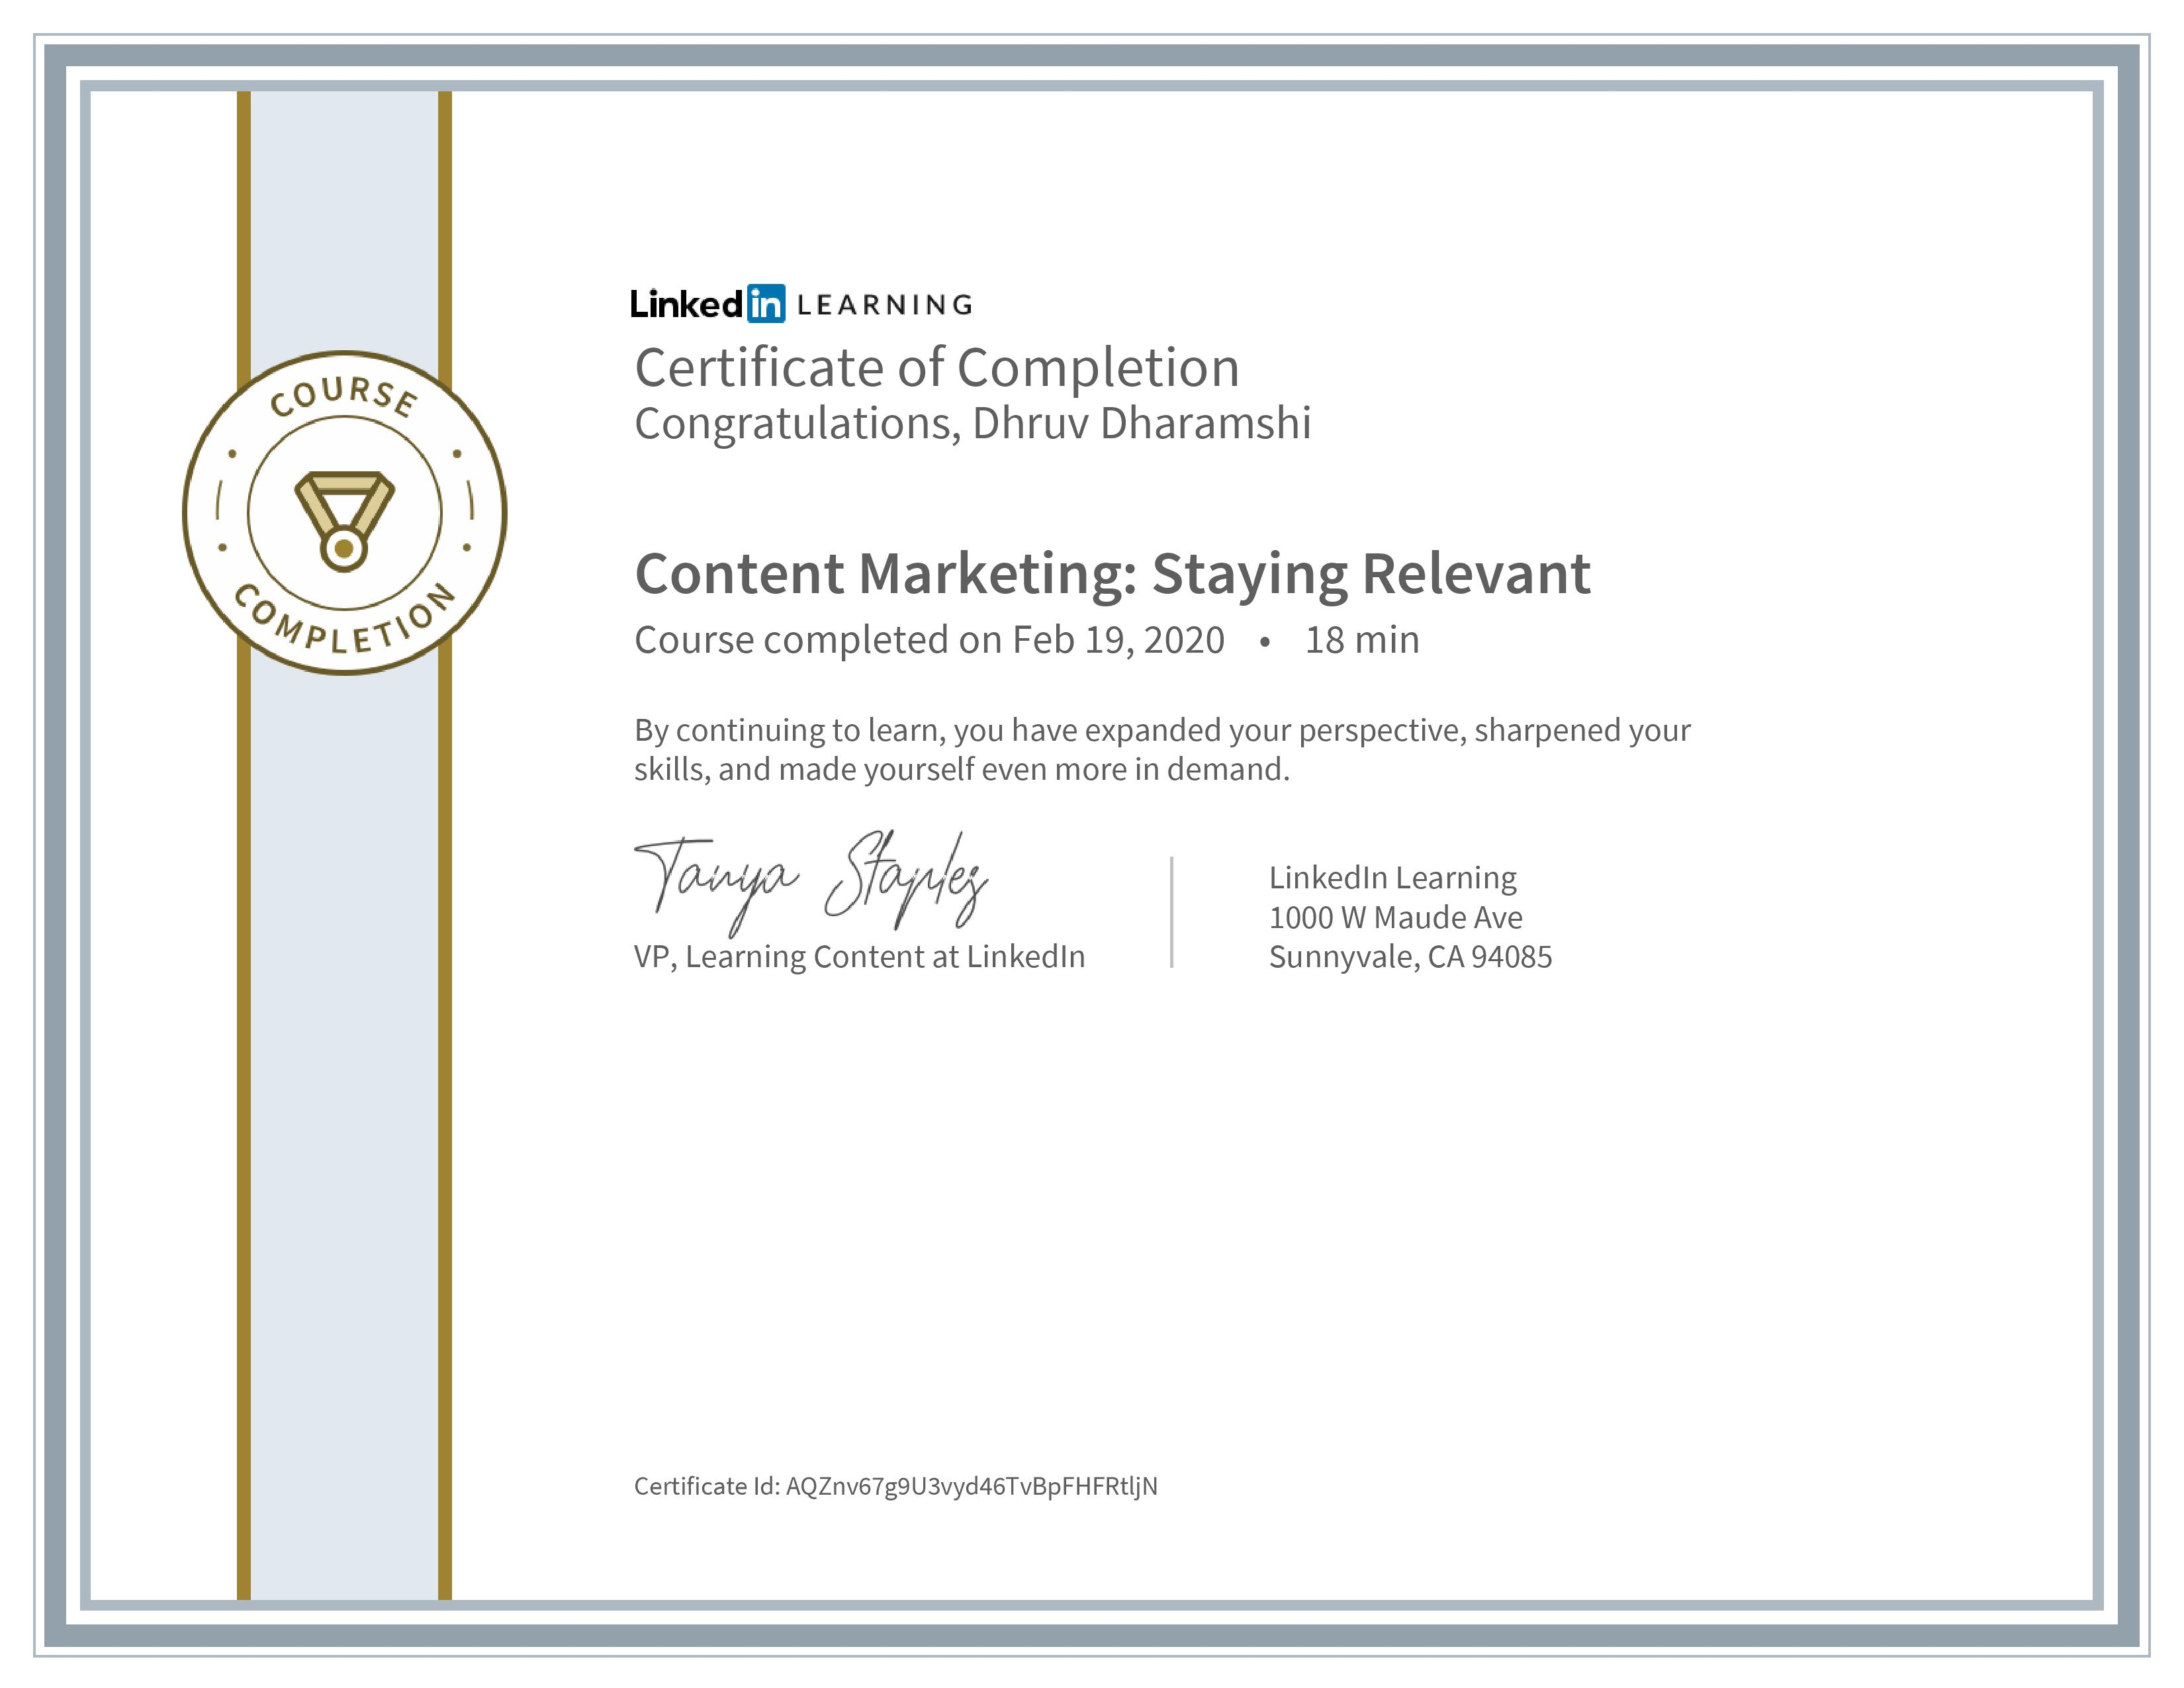 Content Marketing: Staying Relevant